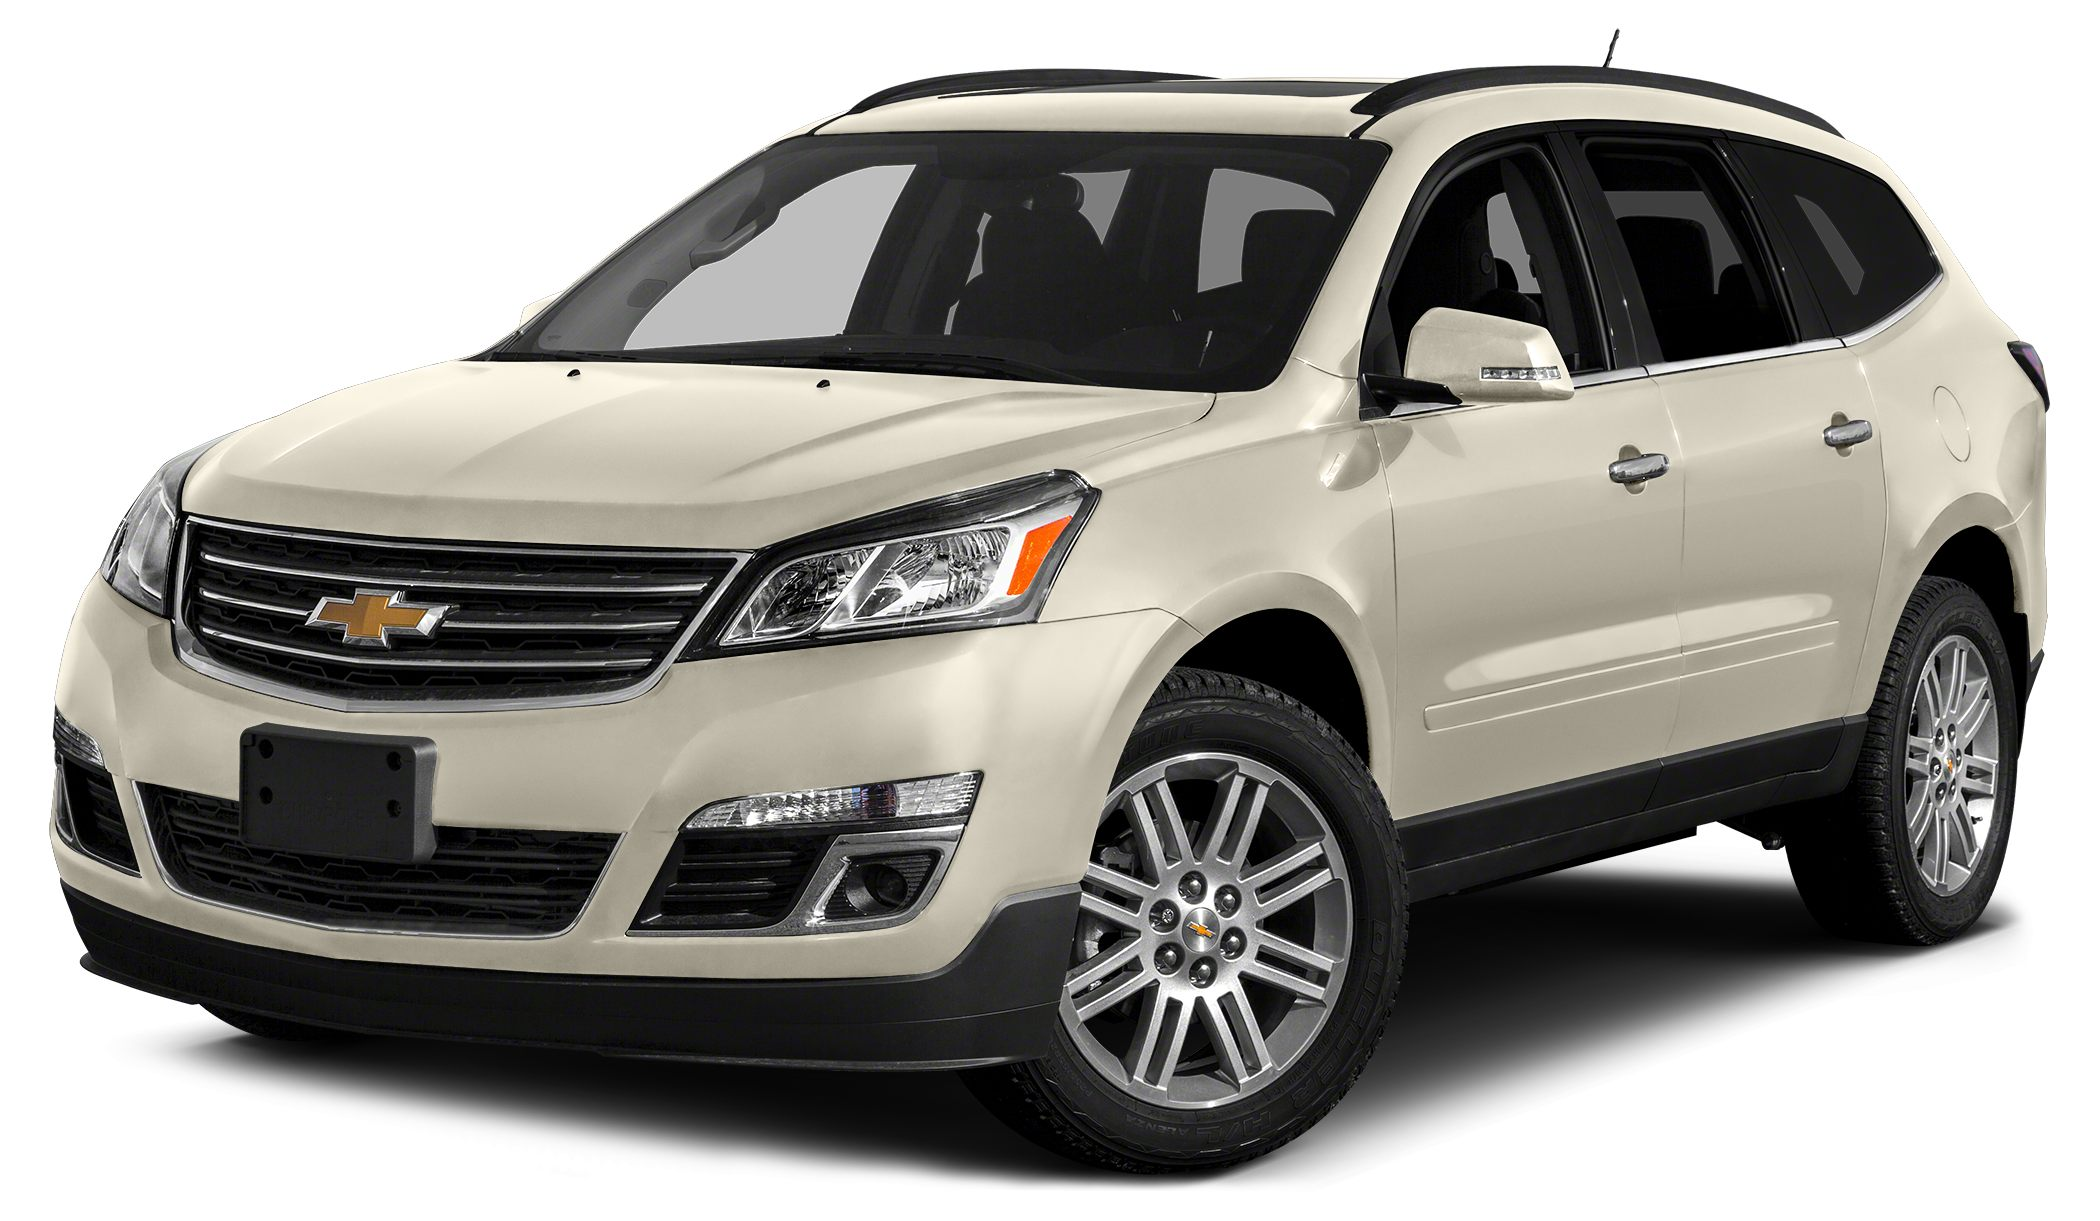 2015 Chevrolet Traverse 1LT YOU PAY LESS THAN WE PAY Special Internet only promotion on this bran